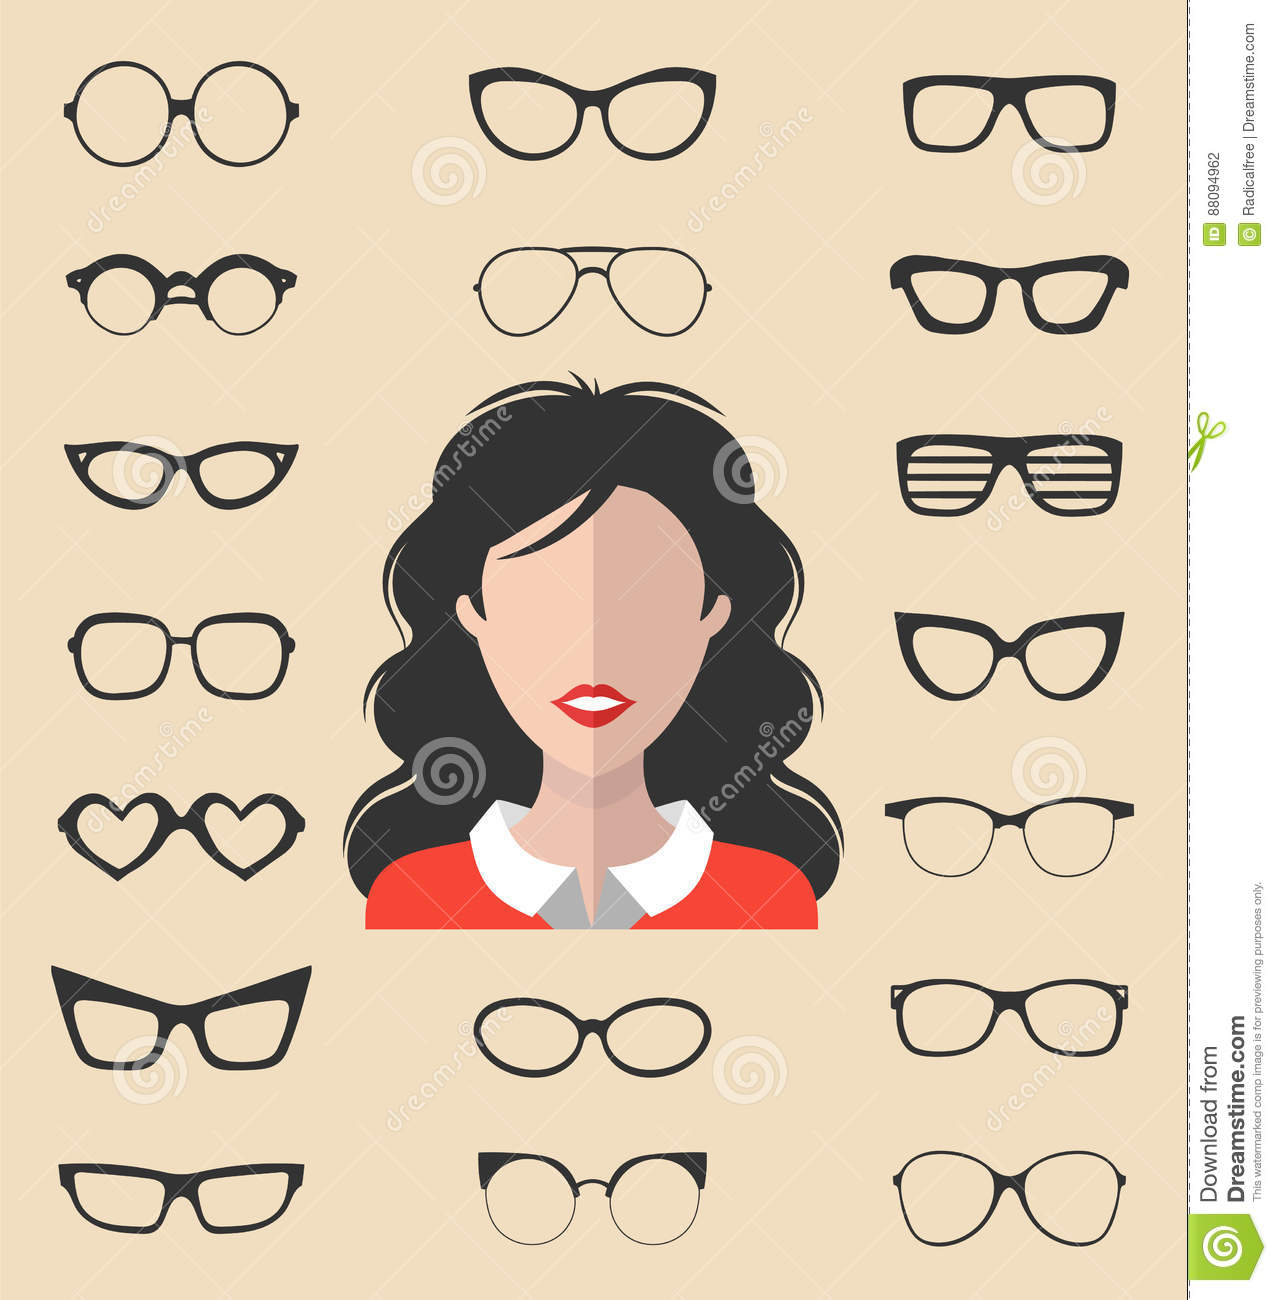 c8a1a05de4d Vector set of dress up constructor with different glasses in trendy flat  style. Female in sunglasses faces icon creator.